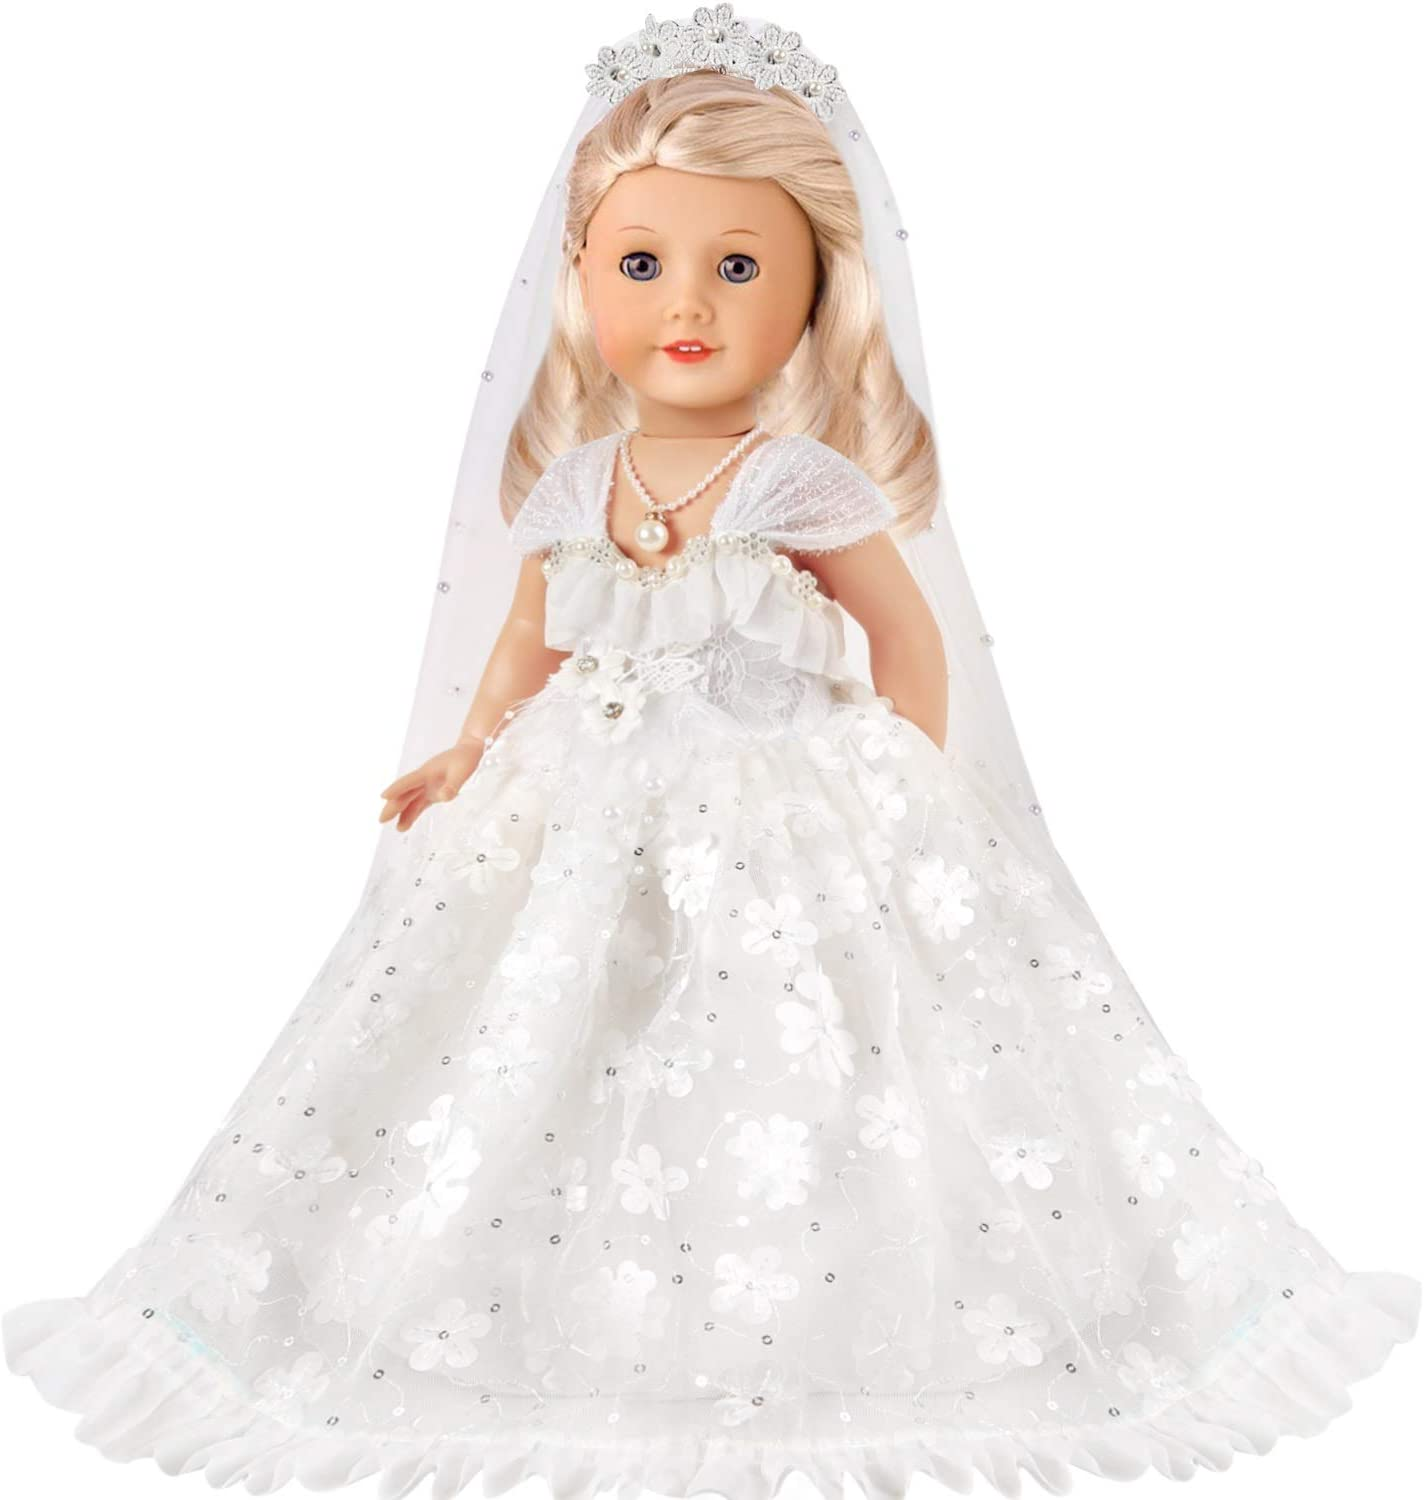 Wedding Dress lausomile 18 Inch Doll Wedding Dress Fit American Doll Girl Clothes and Accessories Outfit with White Bride Gown Long White Veil Necklace 3 PCS